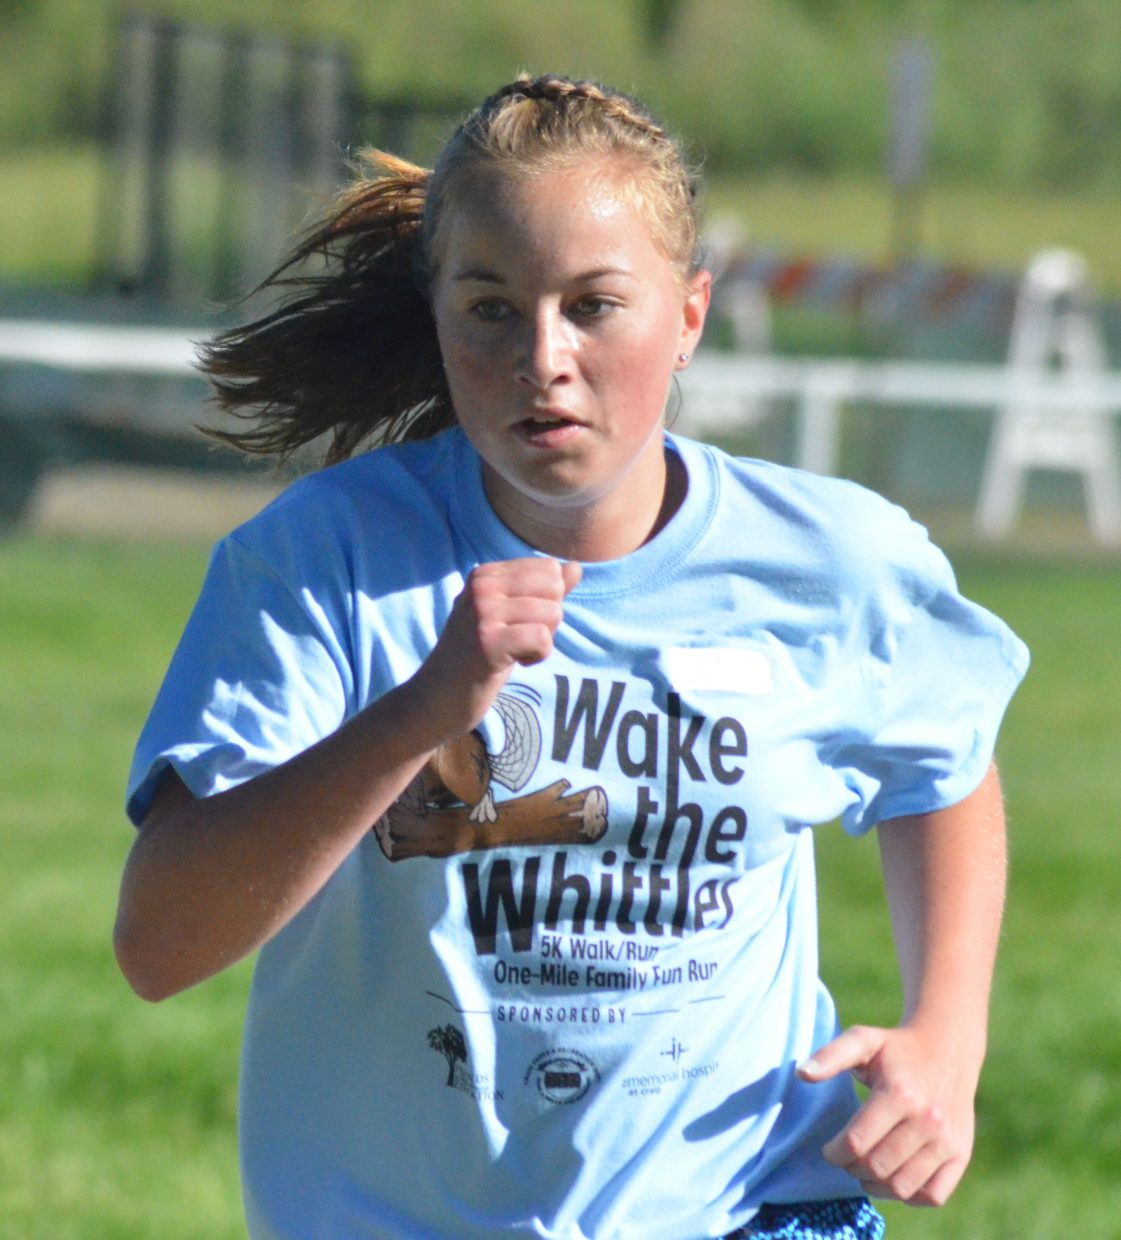 Hayden's Makenna Knez looks to finish strong in the Wake the Whittler 5K Saturday morning. Knez, who also runs cross country for Moffat County High School, had the best overall time among female runners.